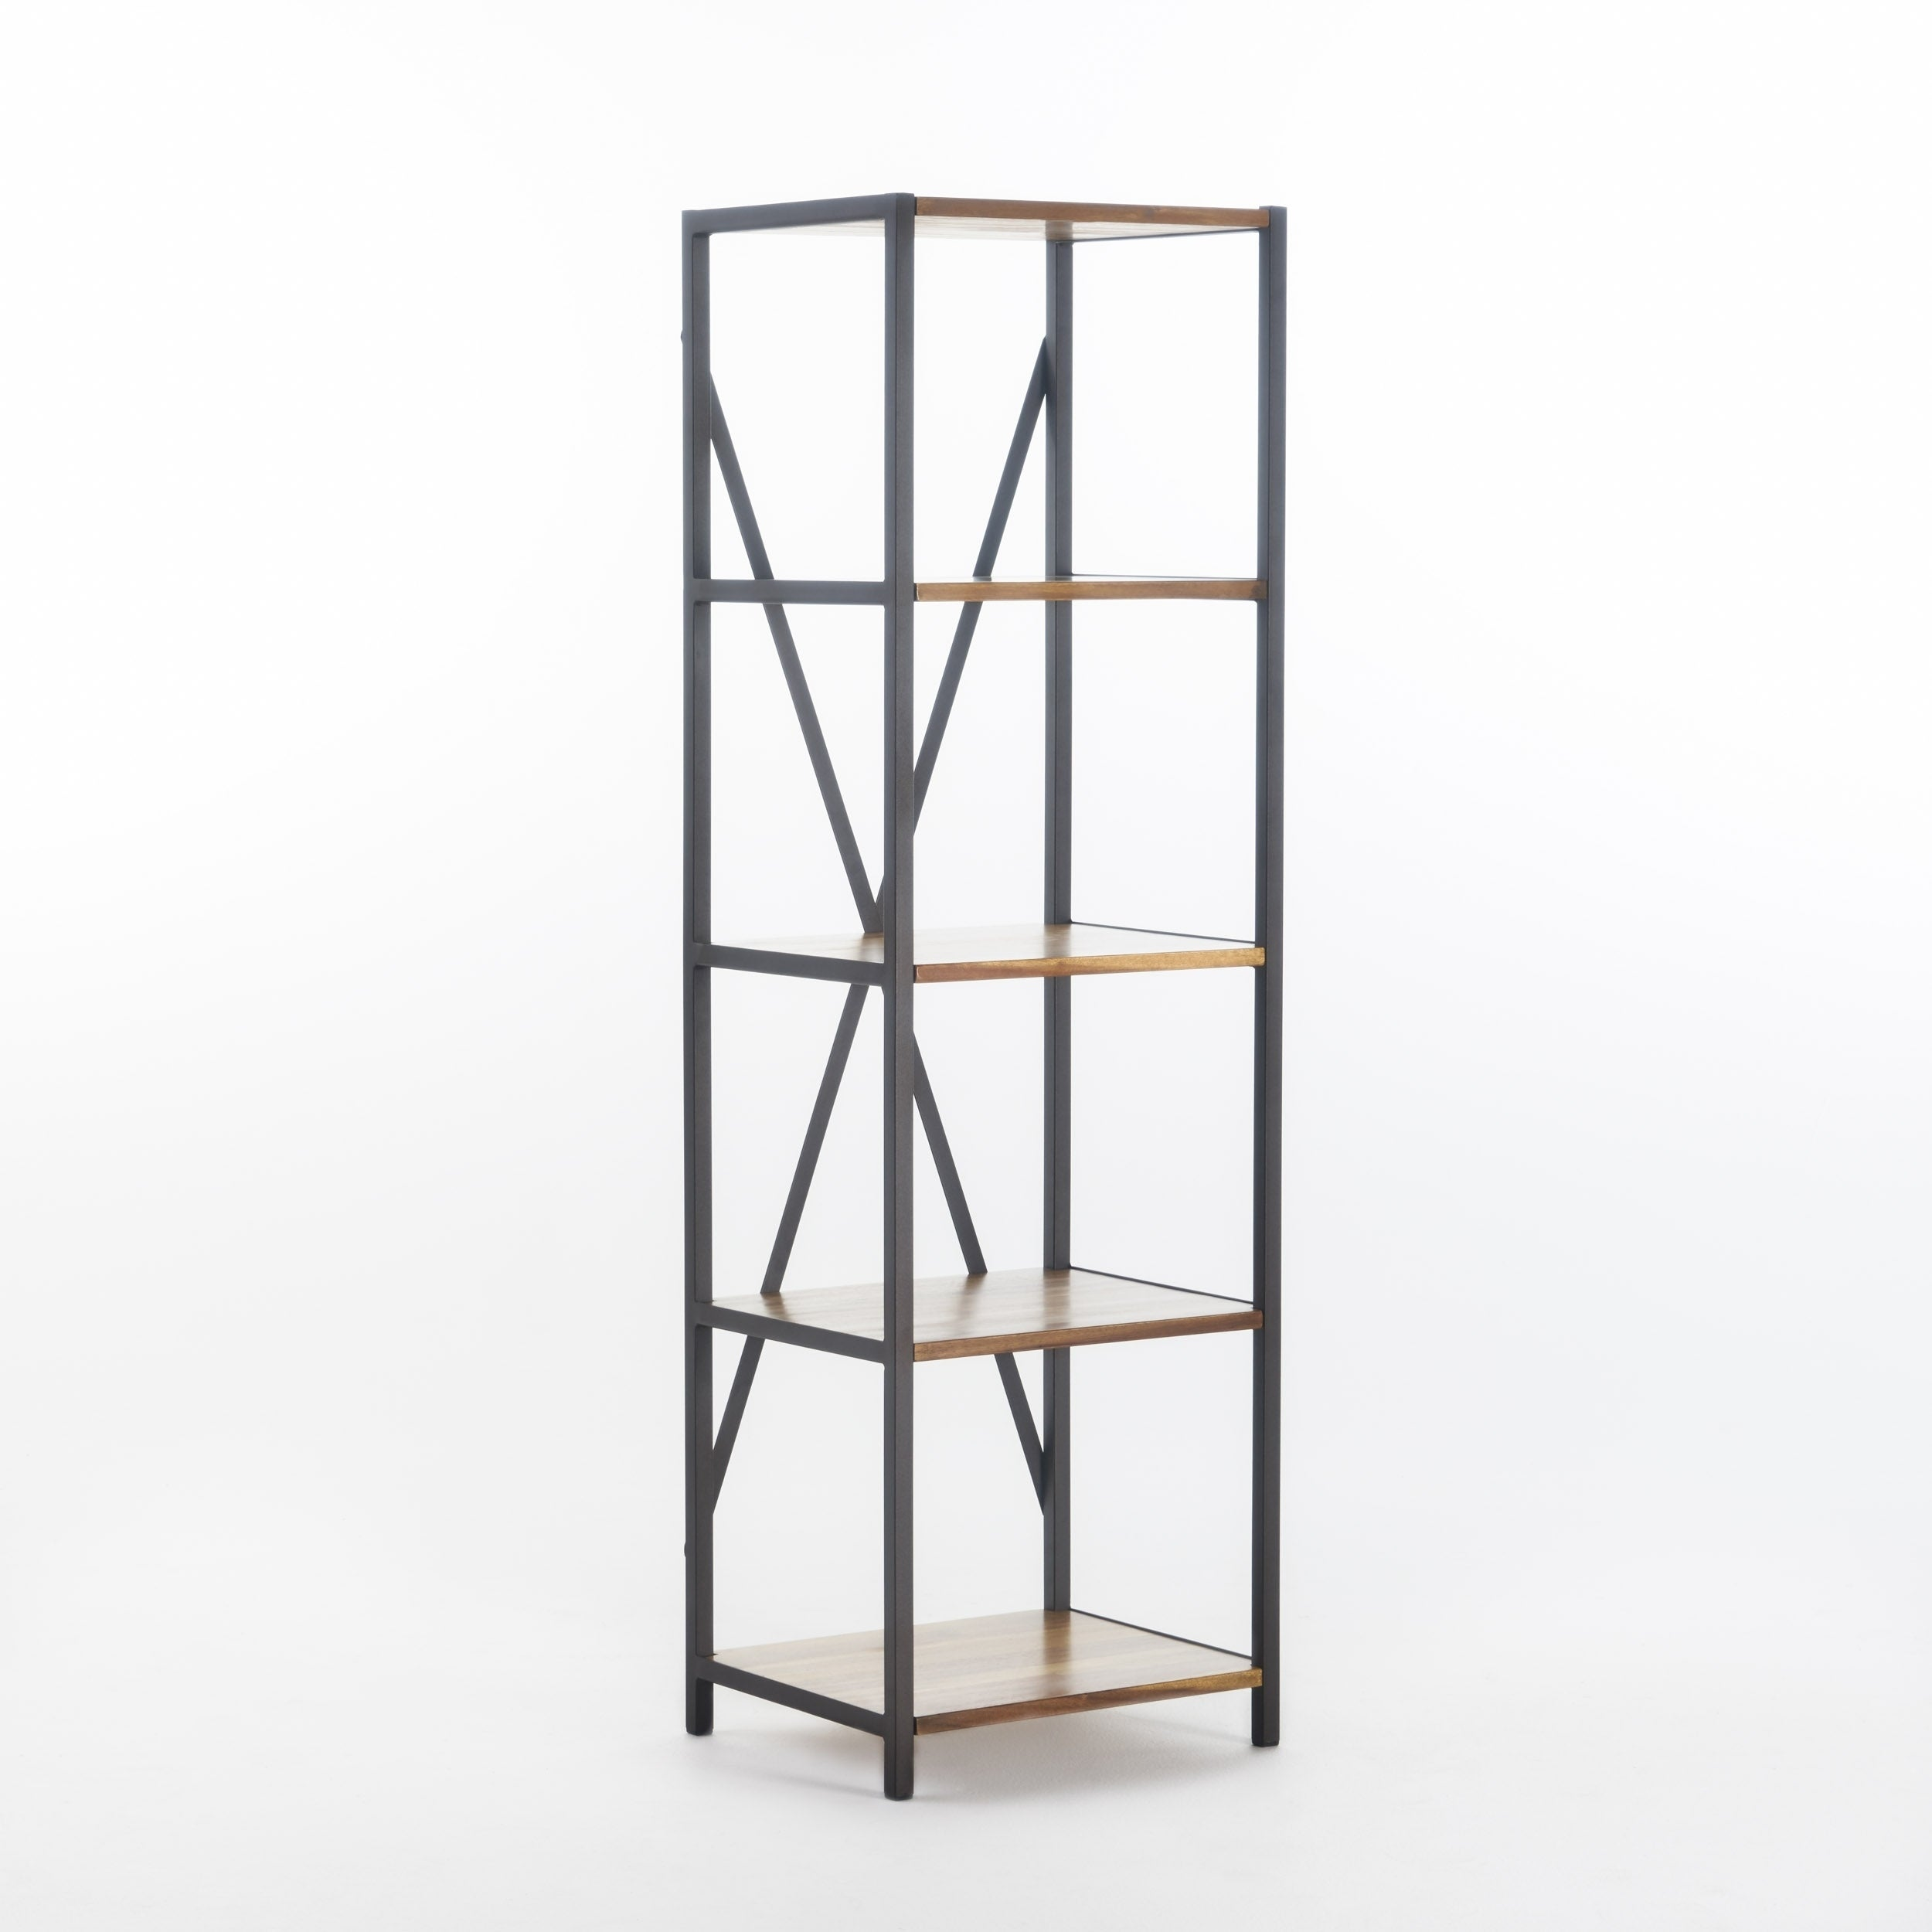 Roney Modern Industrial 4 Shelf Acacia Wood Slim Bookcase By Christopher Knight Home 14 50 W X 17 00 D X 56 50 H